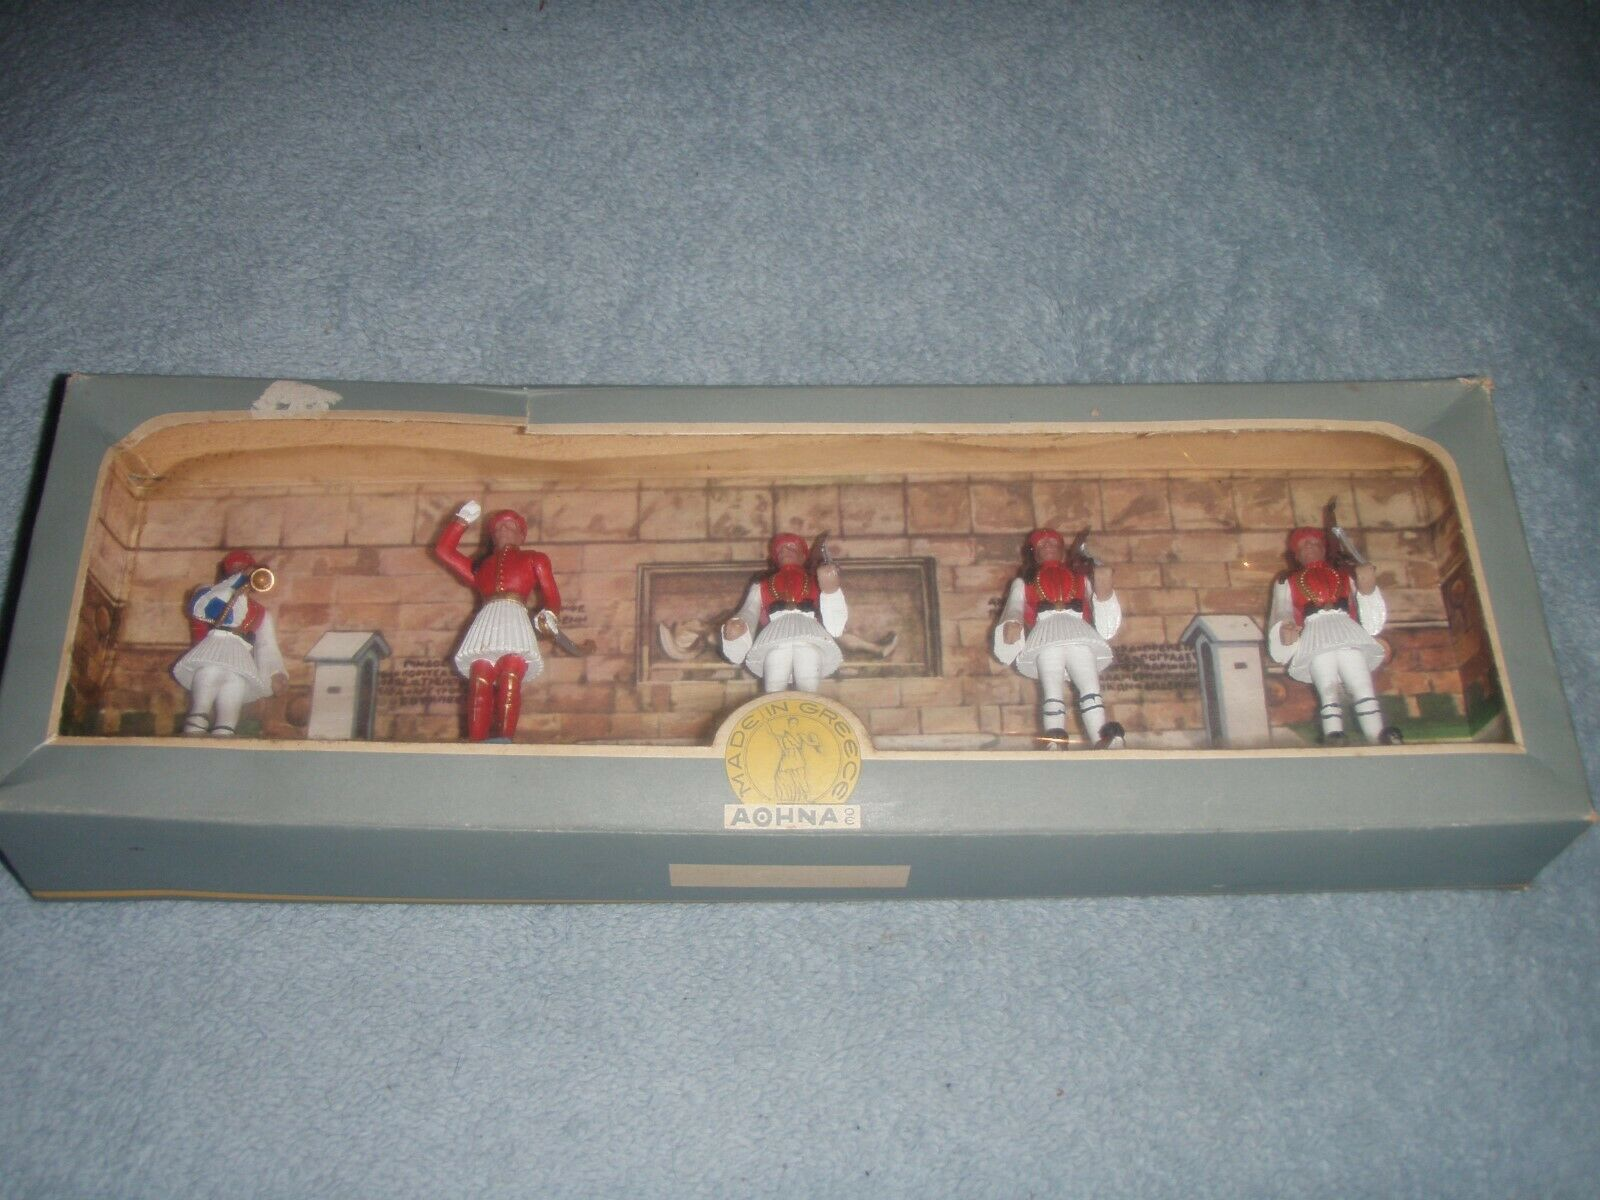 Rare New Vintage 1960's Aohna Boxed Set Made in Greece plastic Soldiers